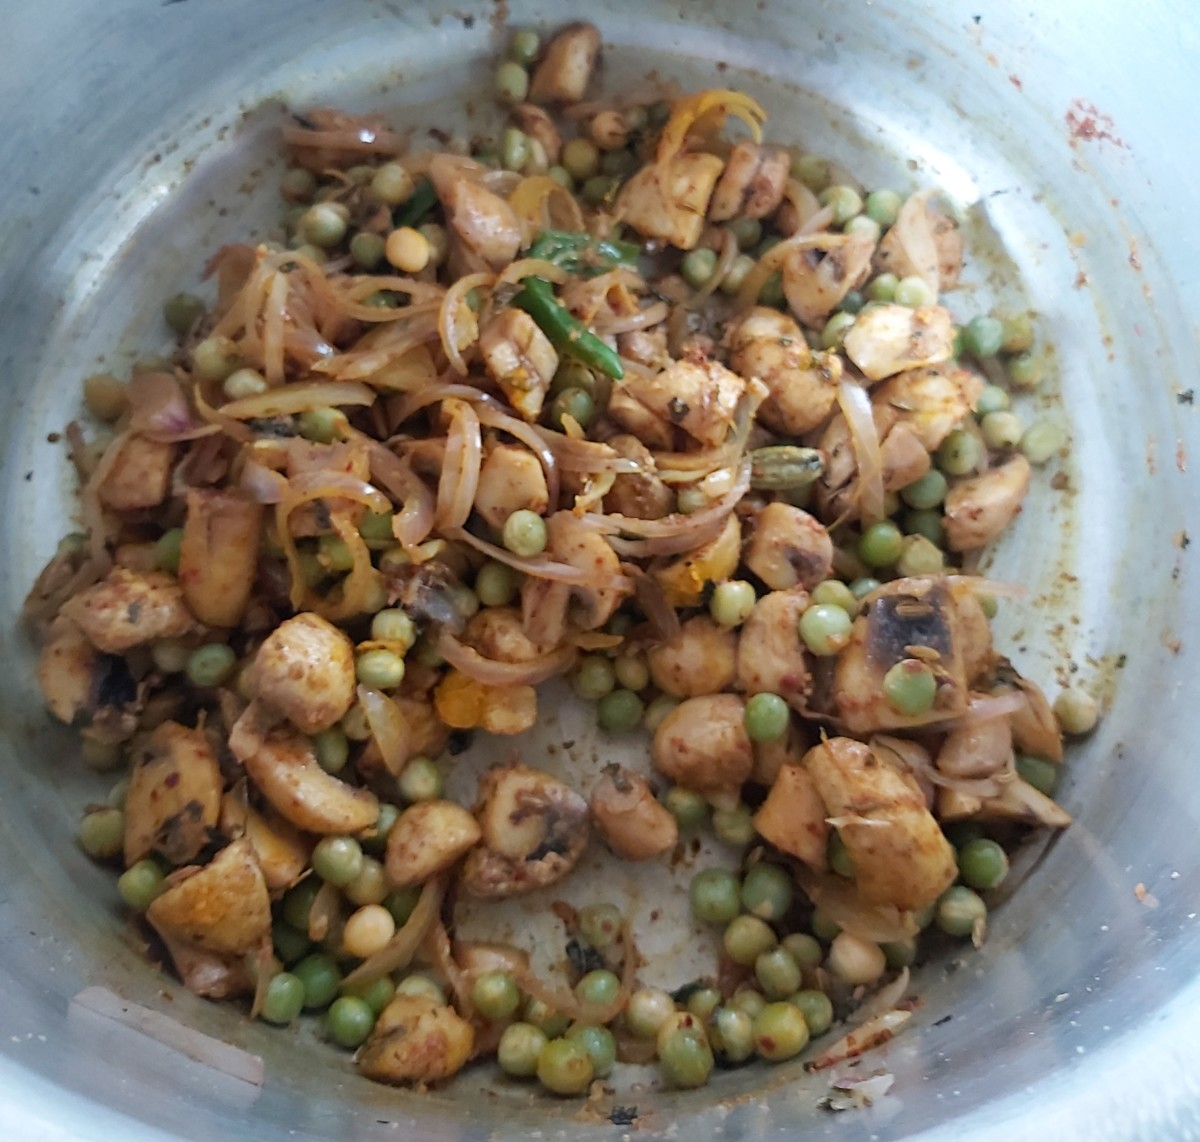 Mix and fry till vegetables coated well with spice powders and raw smell of spice powders goes away.